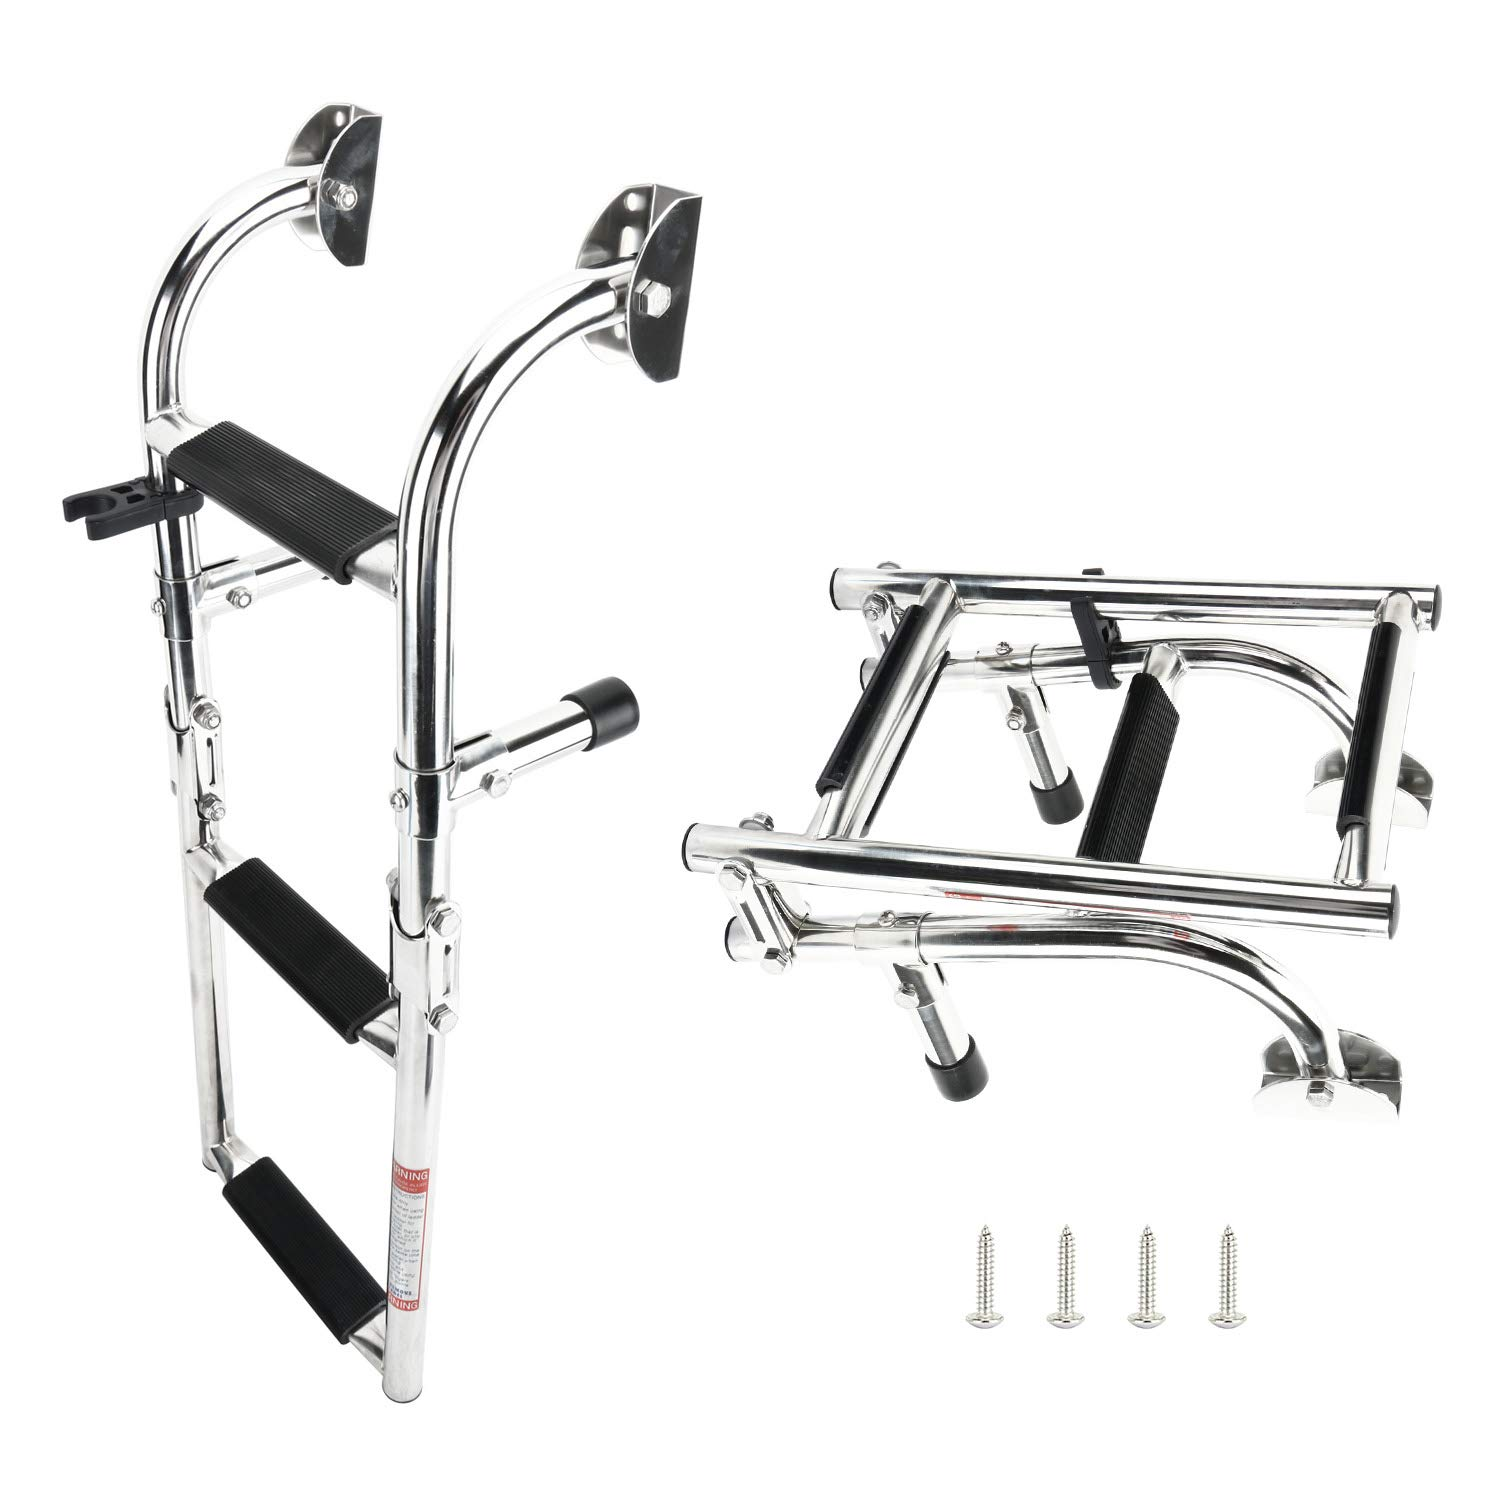 DasMarine 3 Step Folding Ladder Boat Marine Stainless Steel Pontoon Ladder Polished 2+1 Step (Mounting Screws are Included), 300-lbs. Weight Capacity